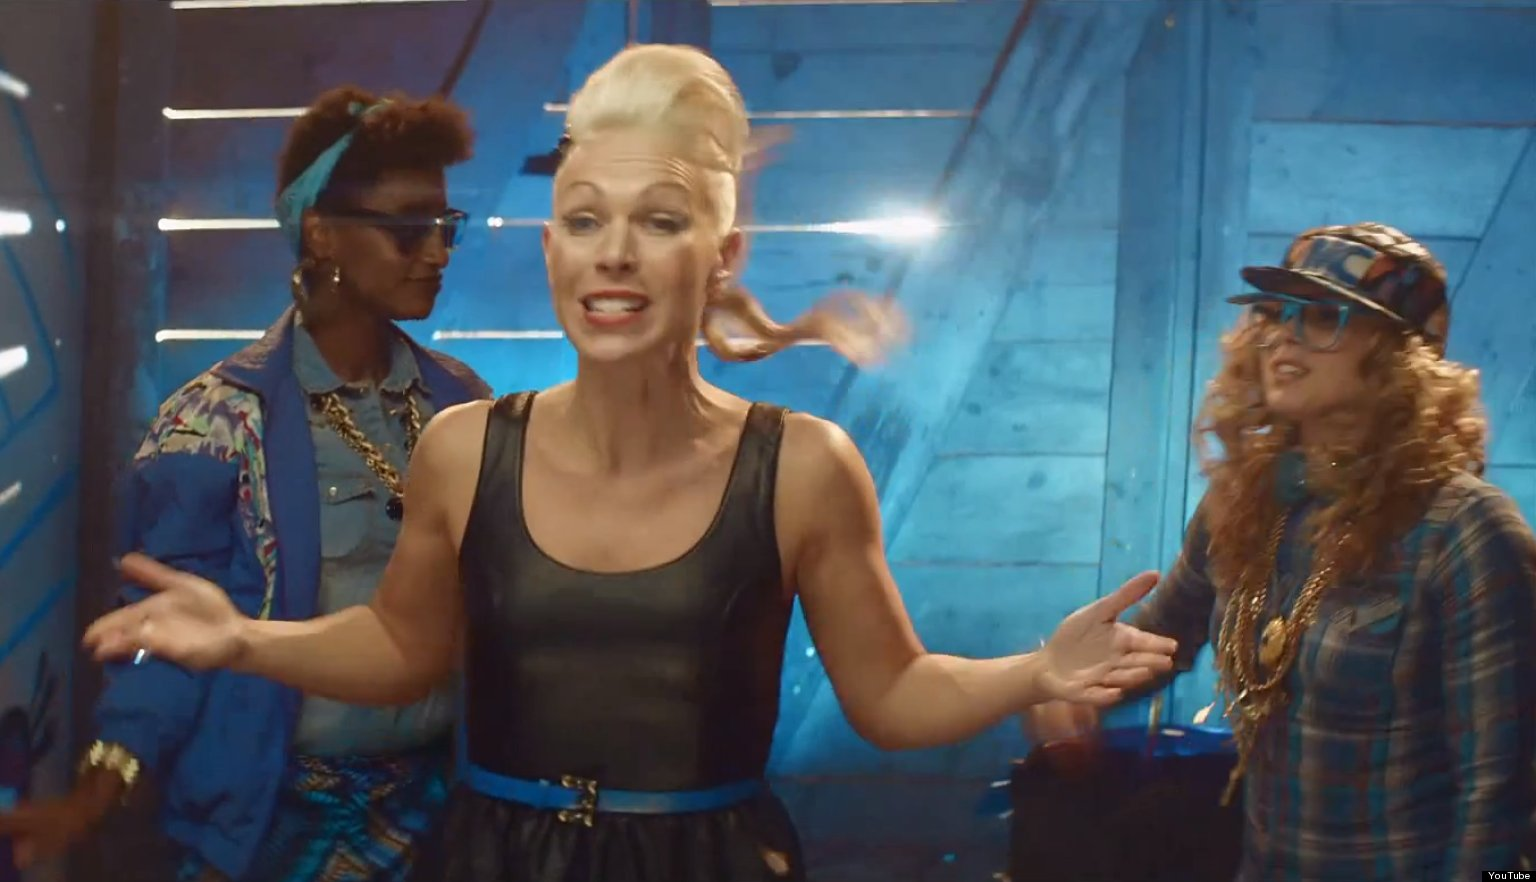 Mooncup ad pits menstrual cup against tampons in a fierce rap battle video huffpost - Diva cup italia ...